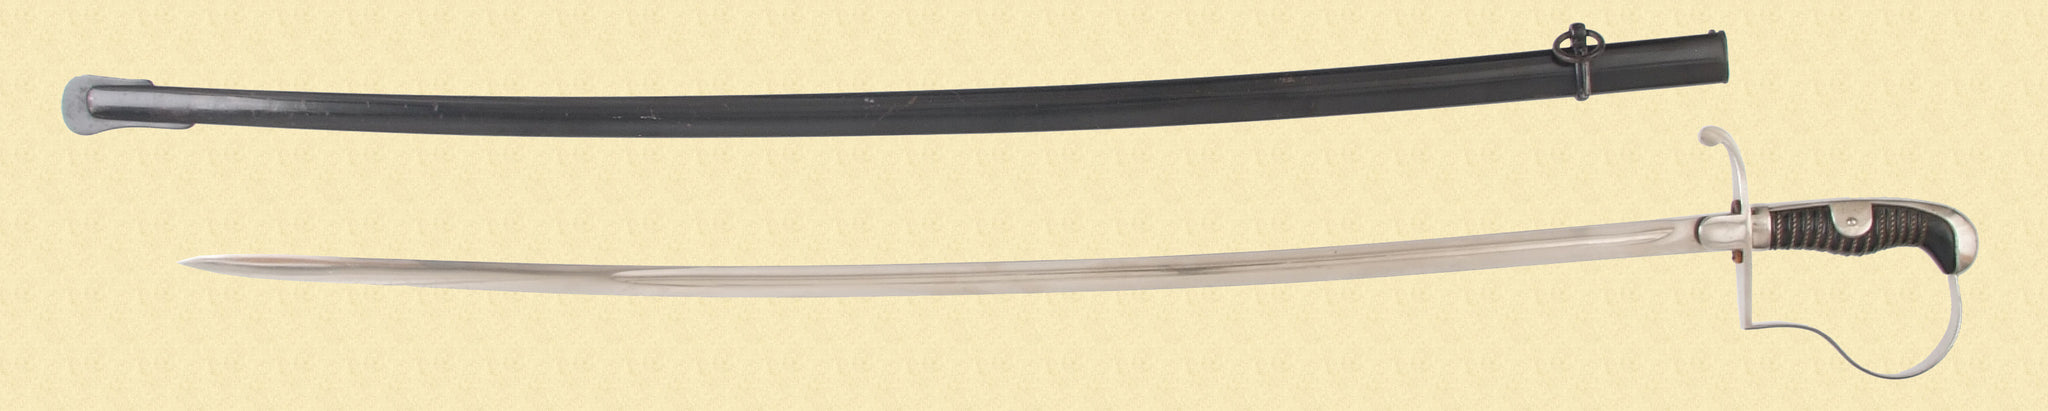 GERMAN P GUARD DRESS SWORD